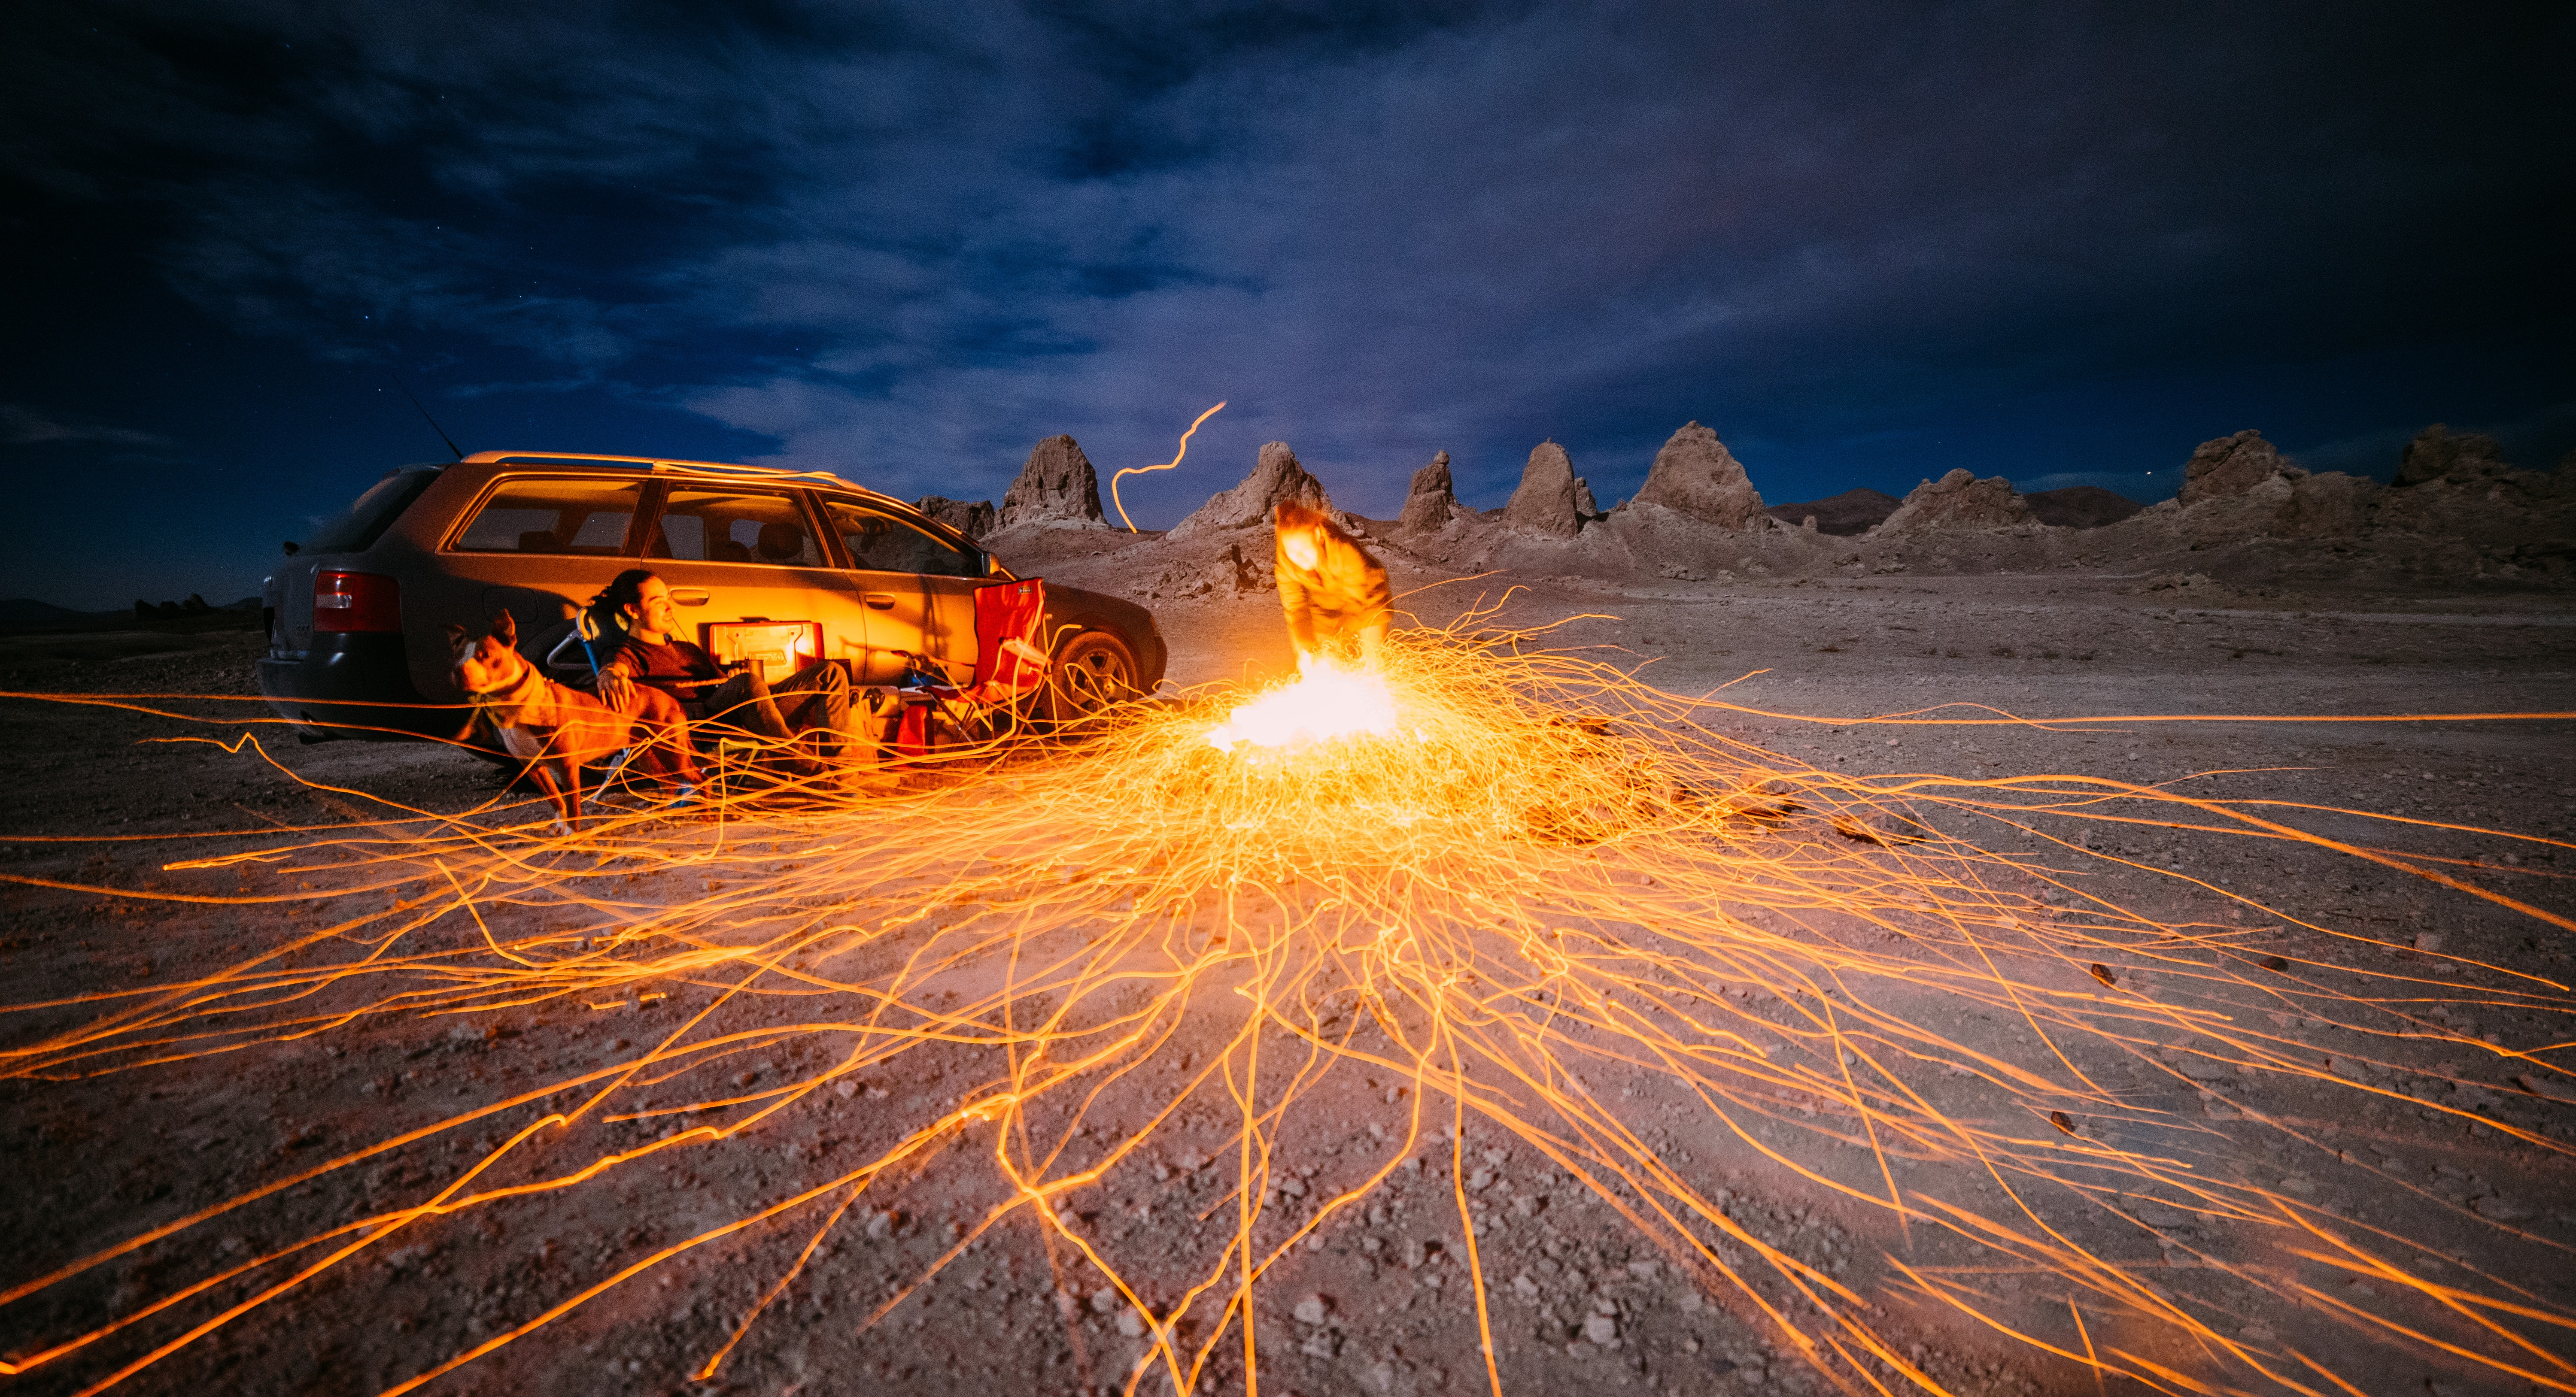 Campers next to a fire at night in the desert